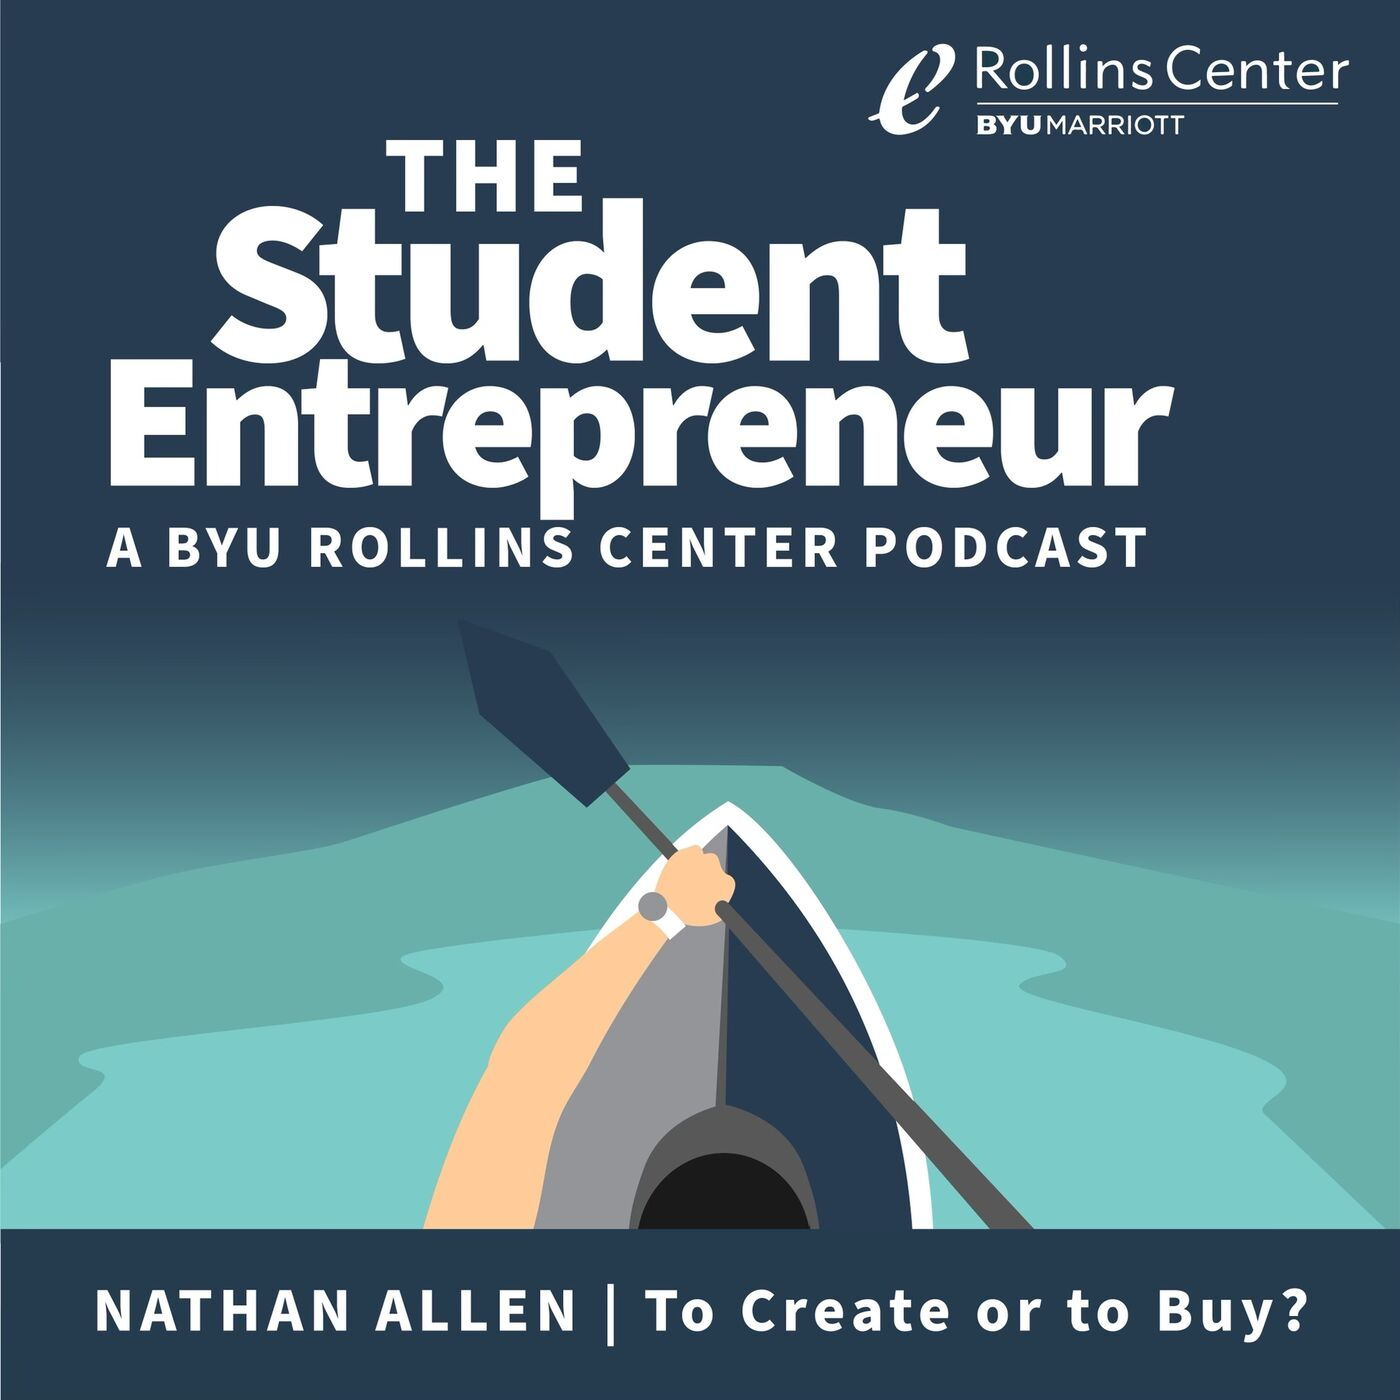 Nathan Allen - To Create or to Buy?